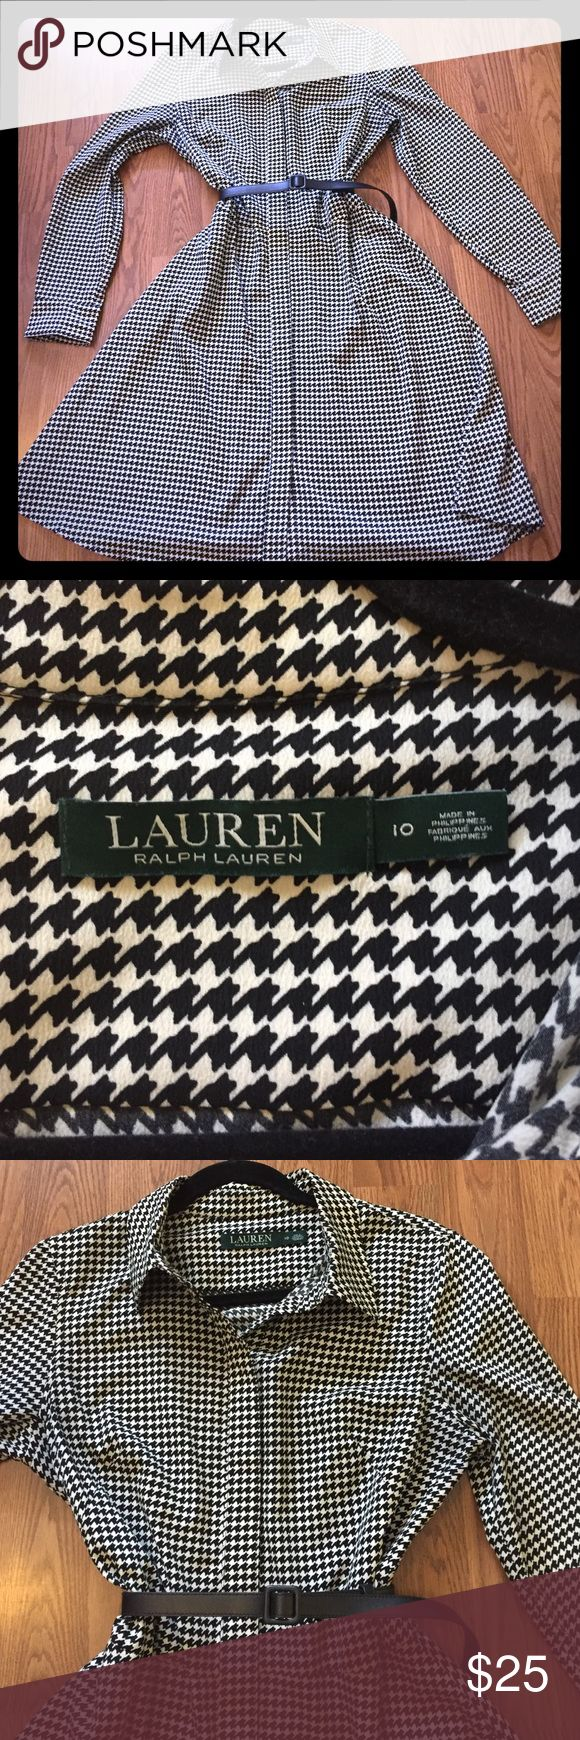 Black and white houndstooth Ralph Lauren dress One Day sale! Classic houndstooth shirt dress from Lauren Ralph Lauren.  Laying flat: Chest is 19 inches pit to pit, length is 39 inches shoulder to hem. Waist is 16 inches.  Comes with black belt.  EUC worn only a couple of times. Lauren Ralph Lauren Dresses Long Sleeve